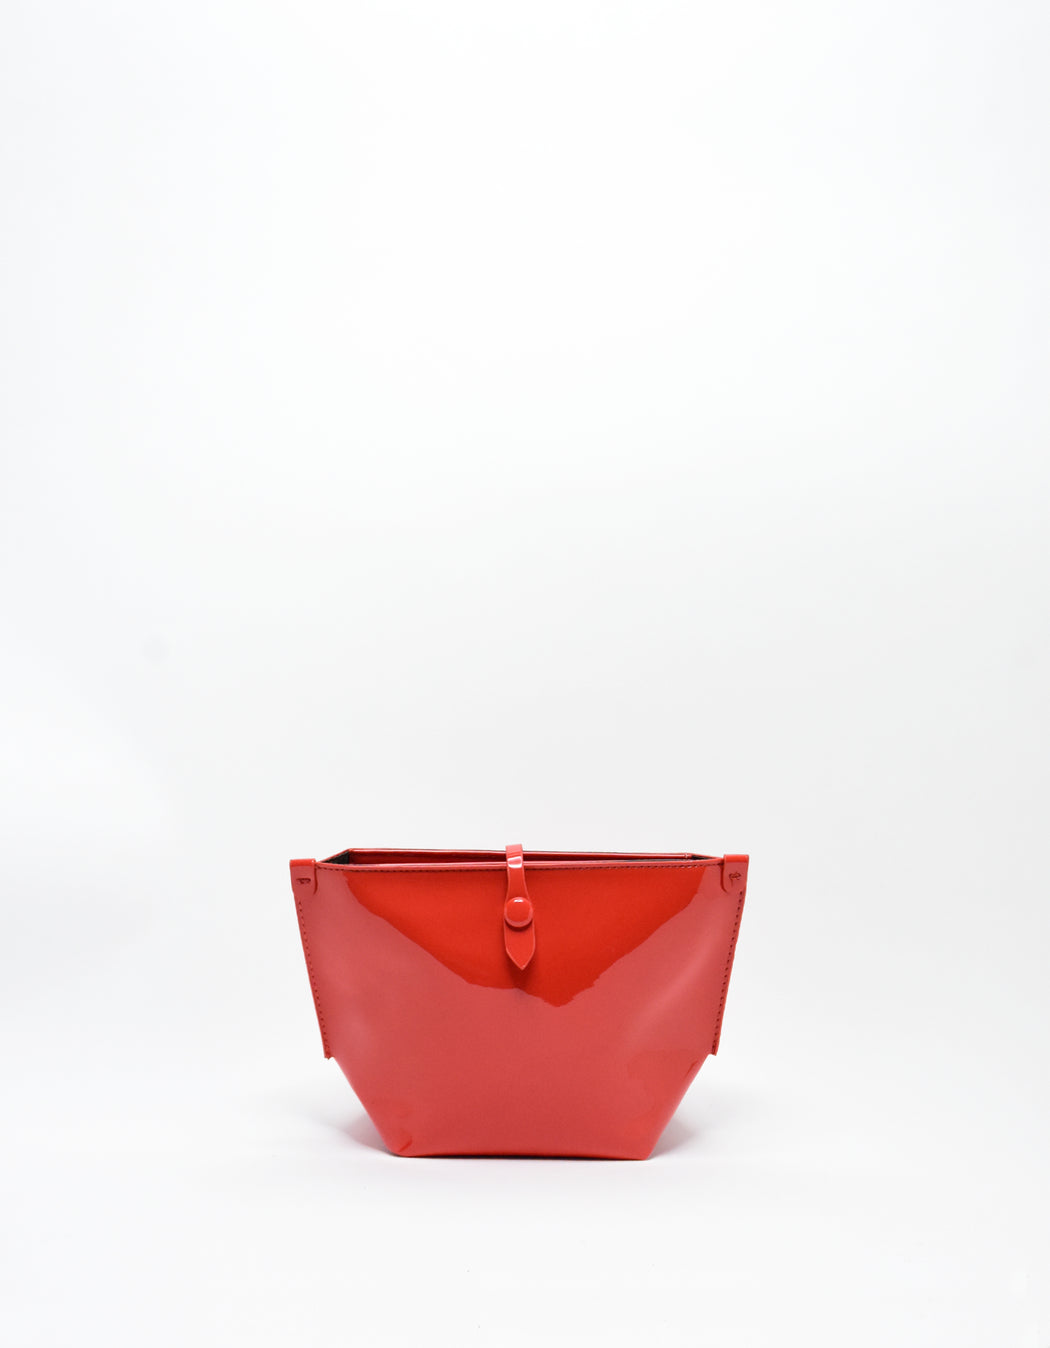 SOBRIQUET PATENT SMALL MAKE UP POUCH PERSIMMON ORANGE